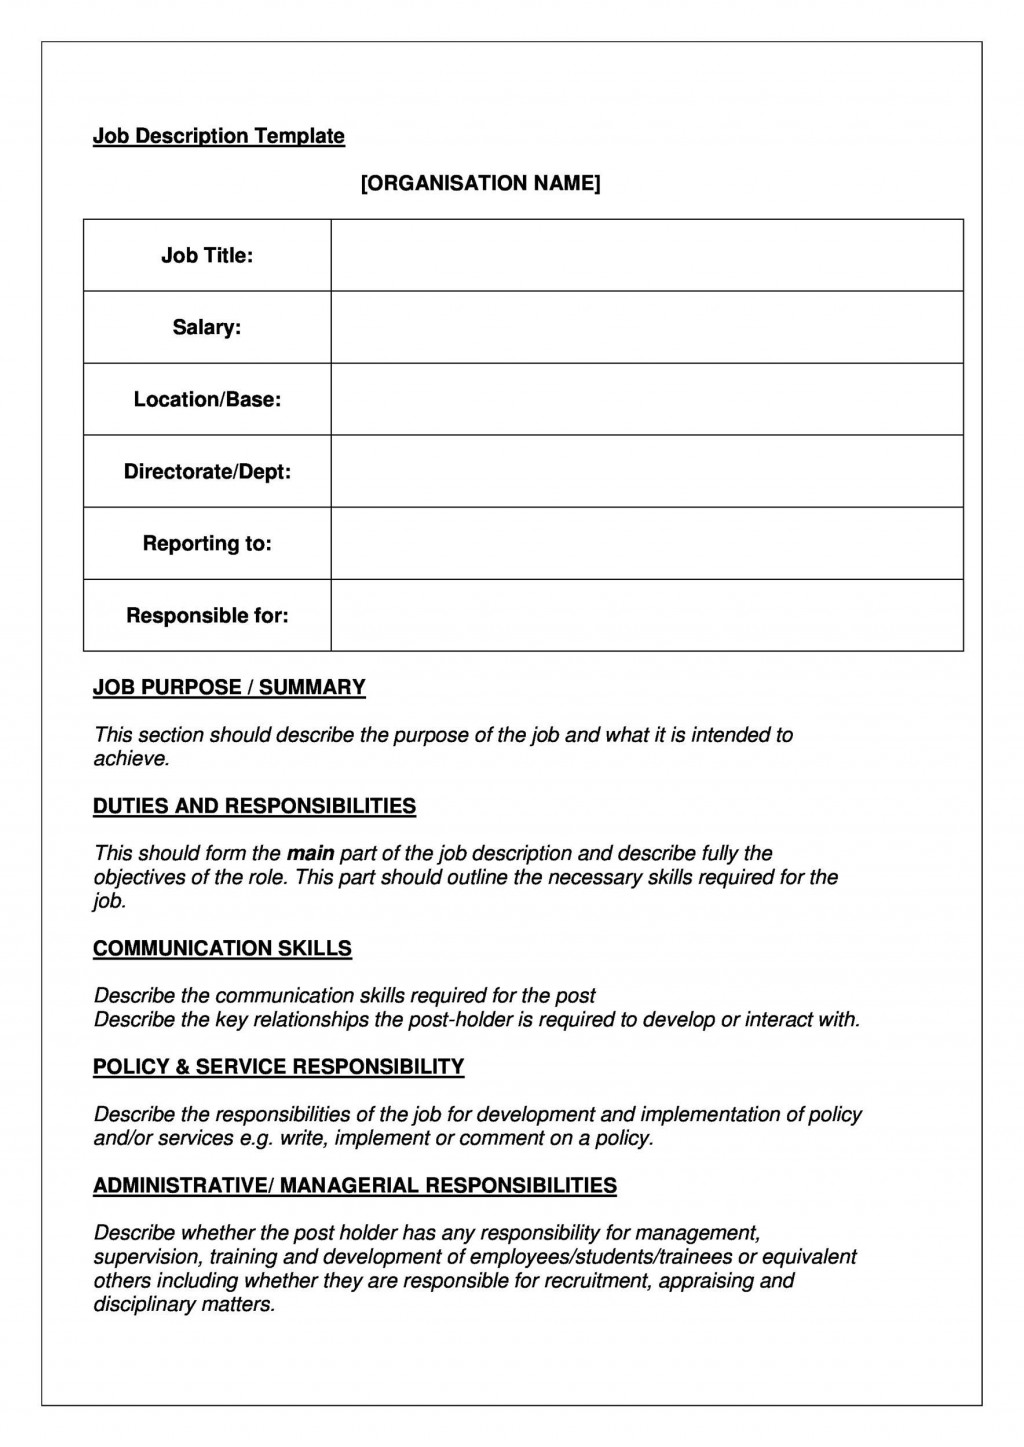 005 Stupendou Blank Job Description Template Picture  Ks2 Word Free PrintableLarge